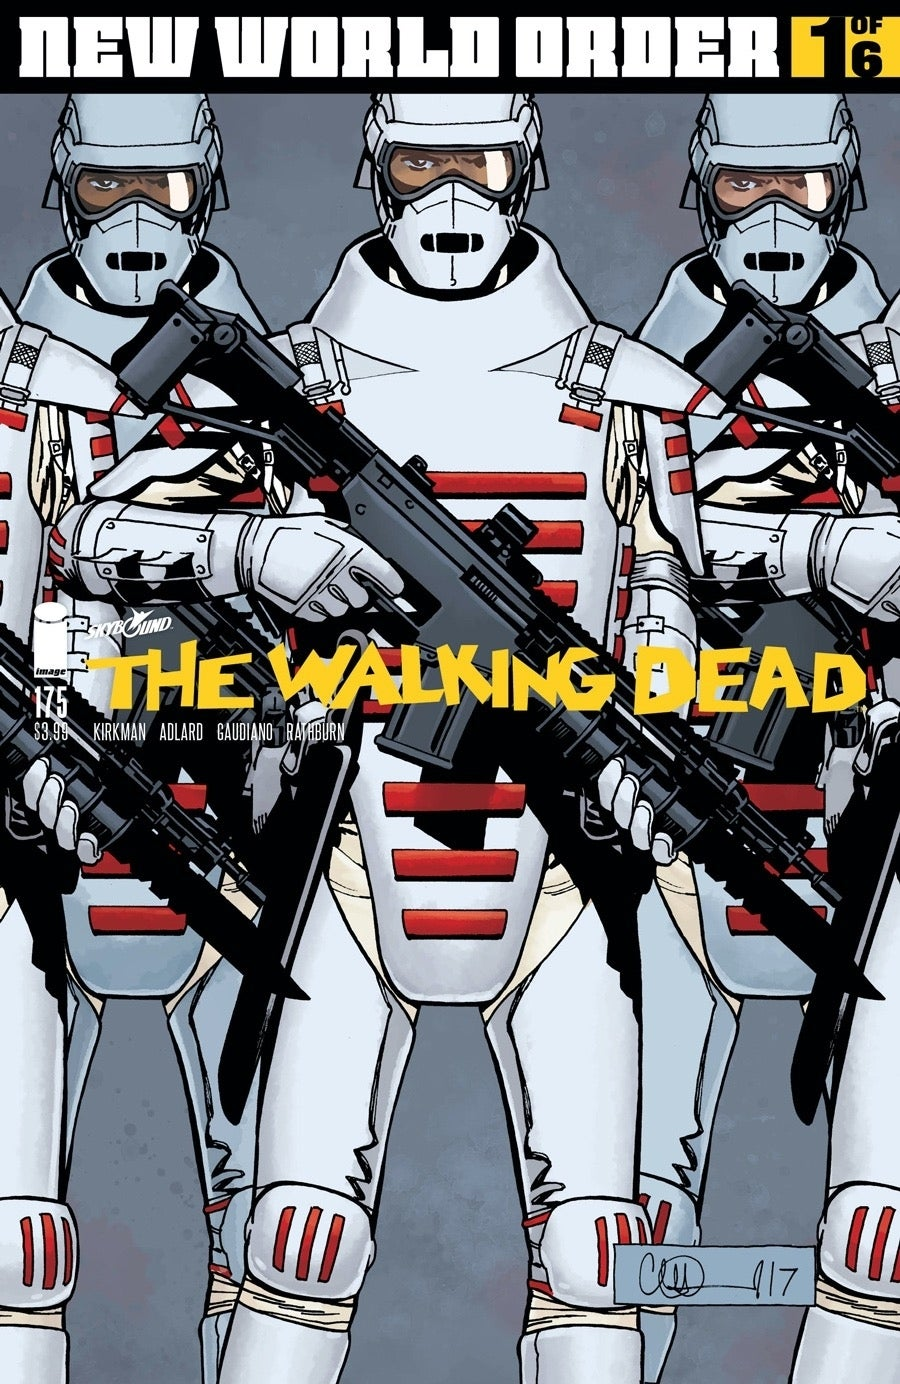 The Walking Dead issue 175 Commonwealth Army